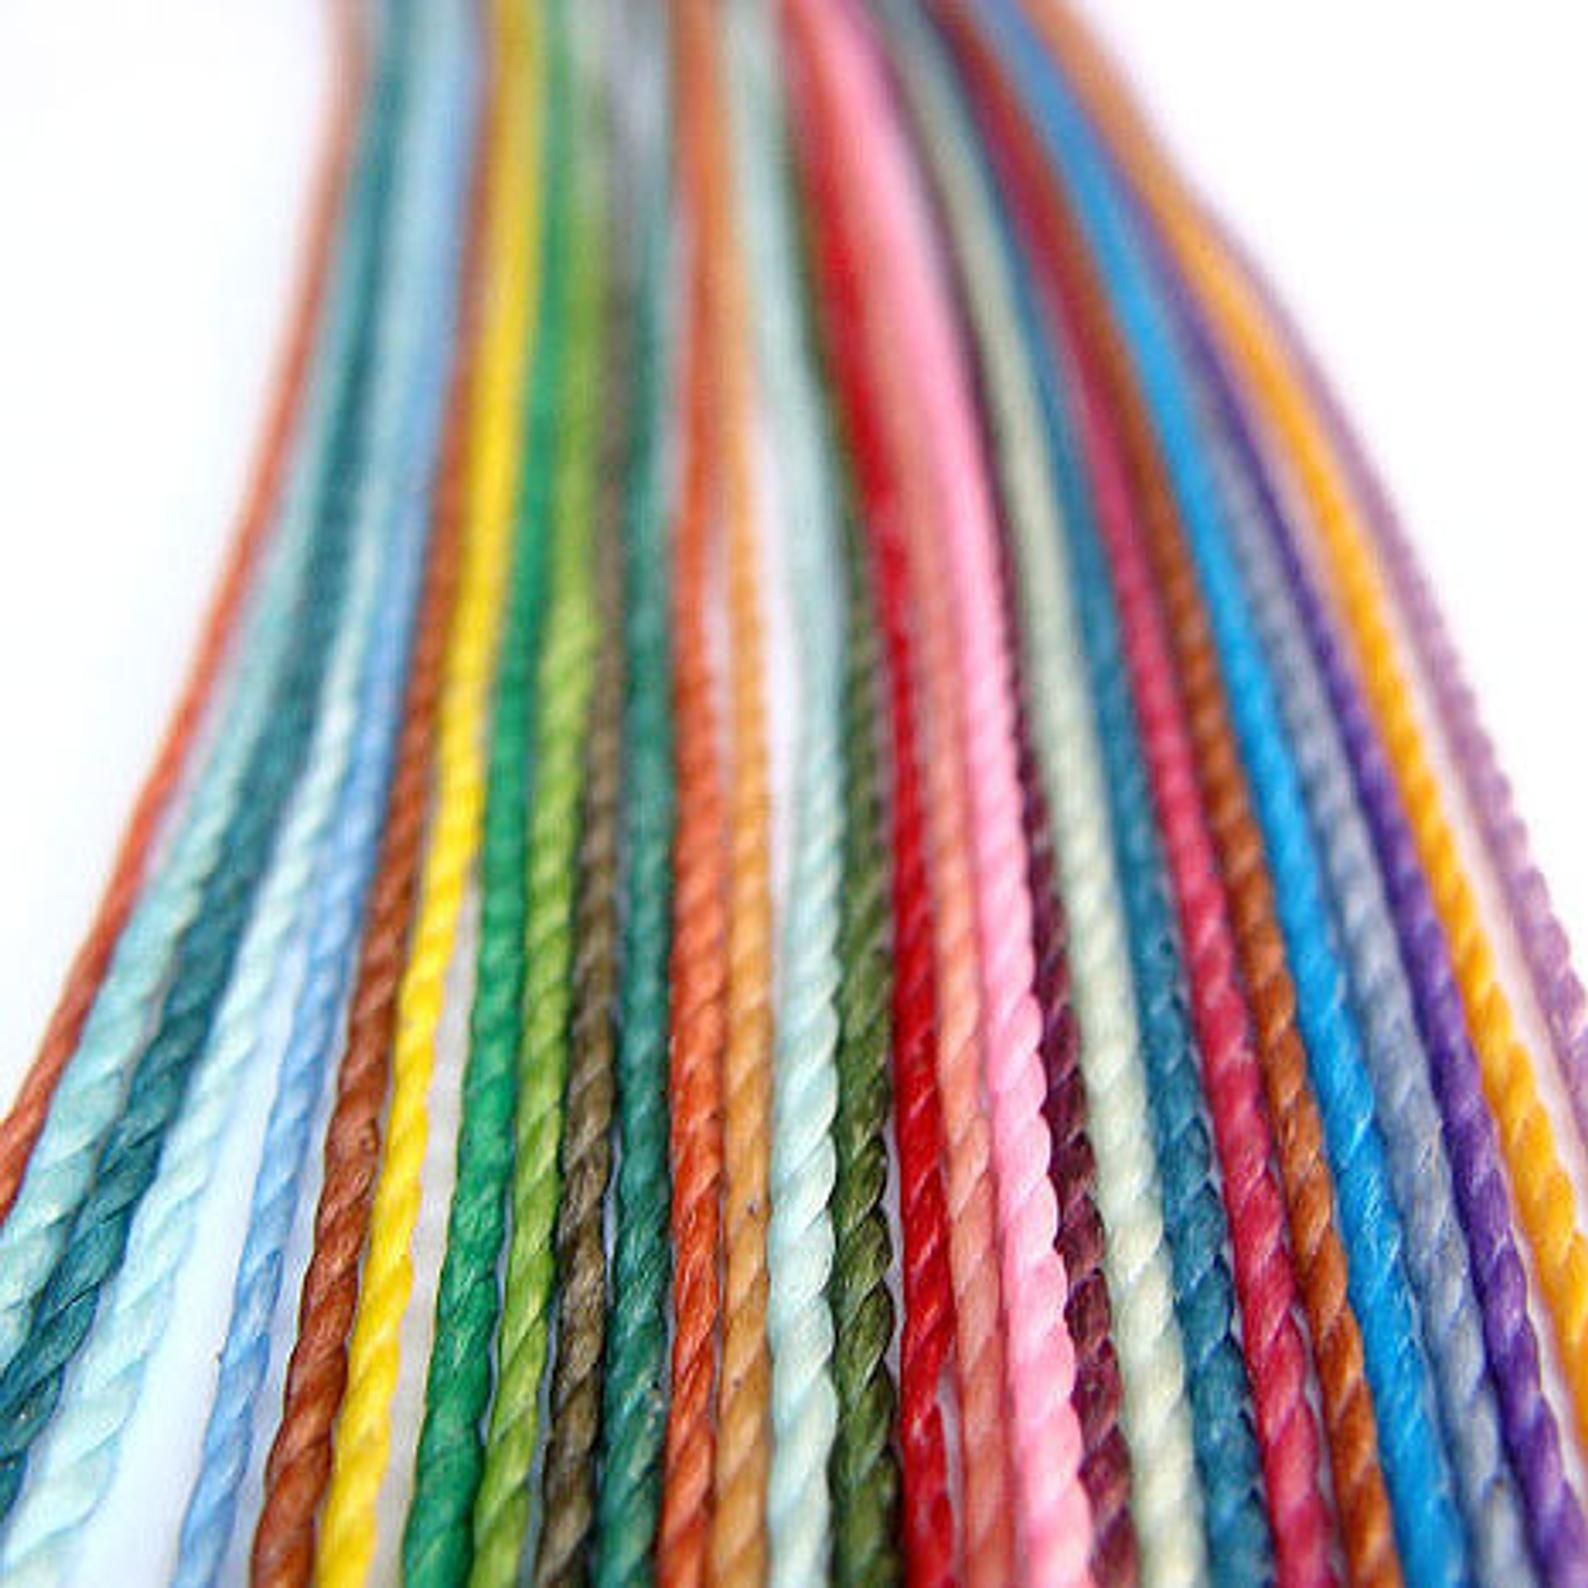 16 rolls of Linhasita waxed macrame cord for friendship bracelets and jewelry